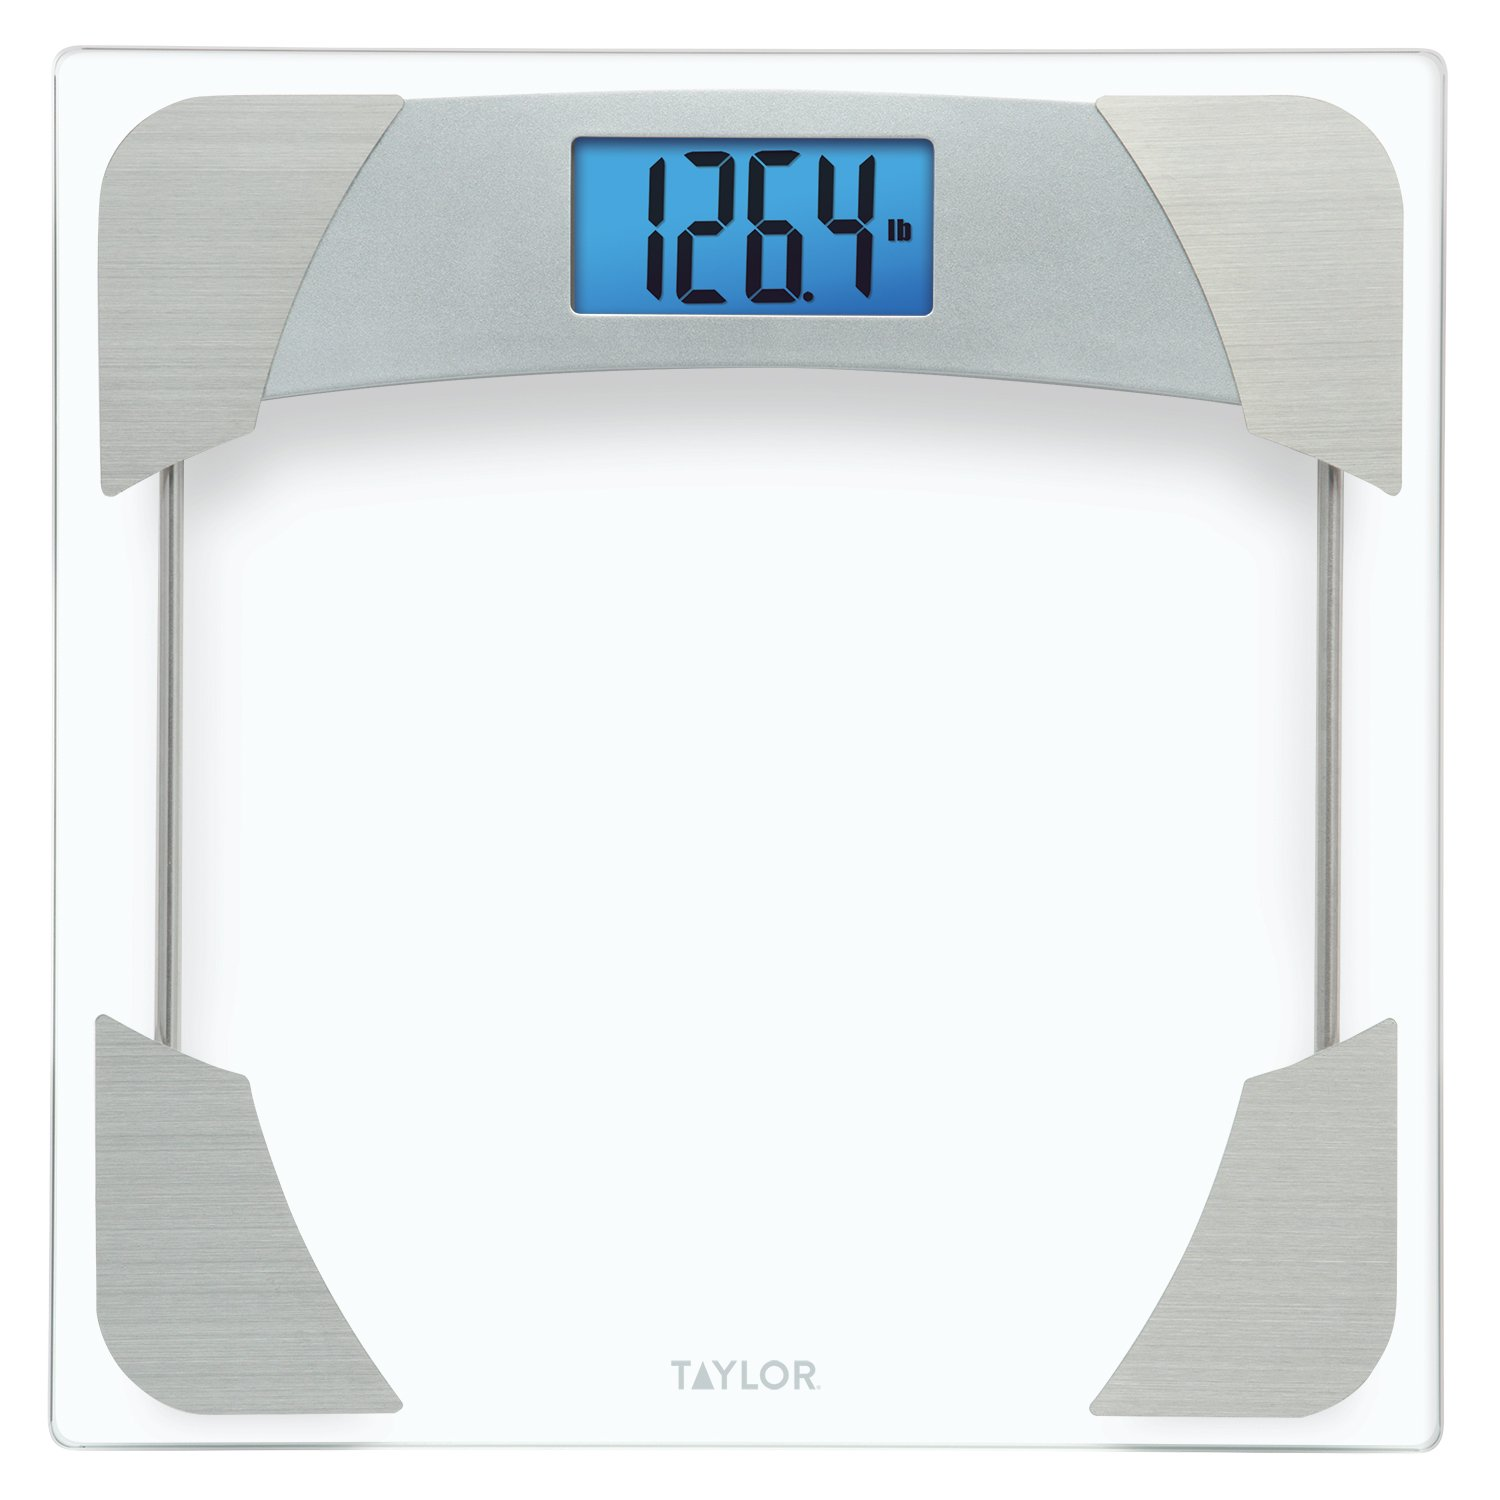 CDM product Taylor 400 Lb. Capacity Digital Glass Bathroom Scale Stainless Steel Accents big image